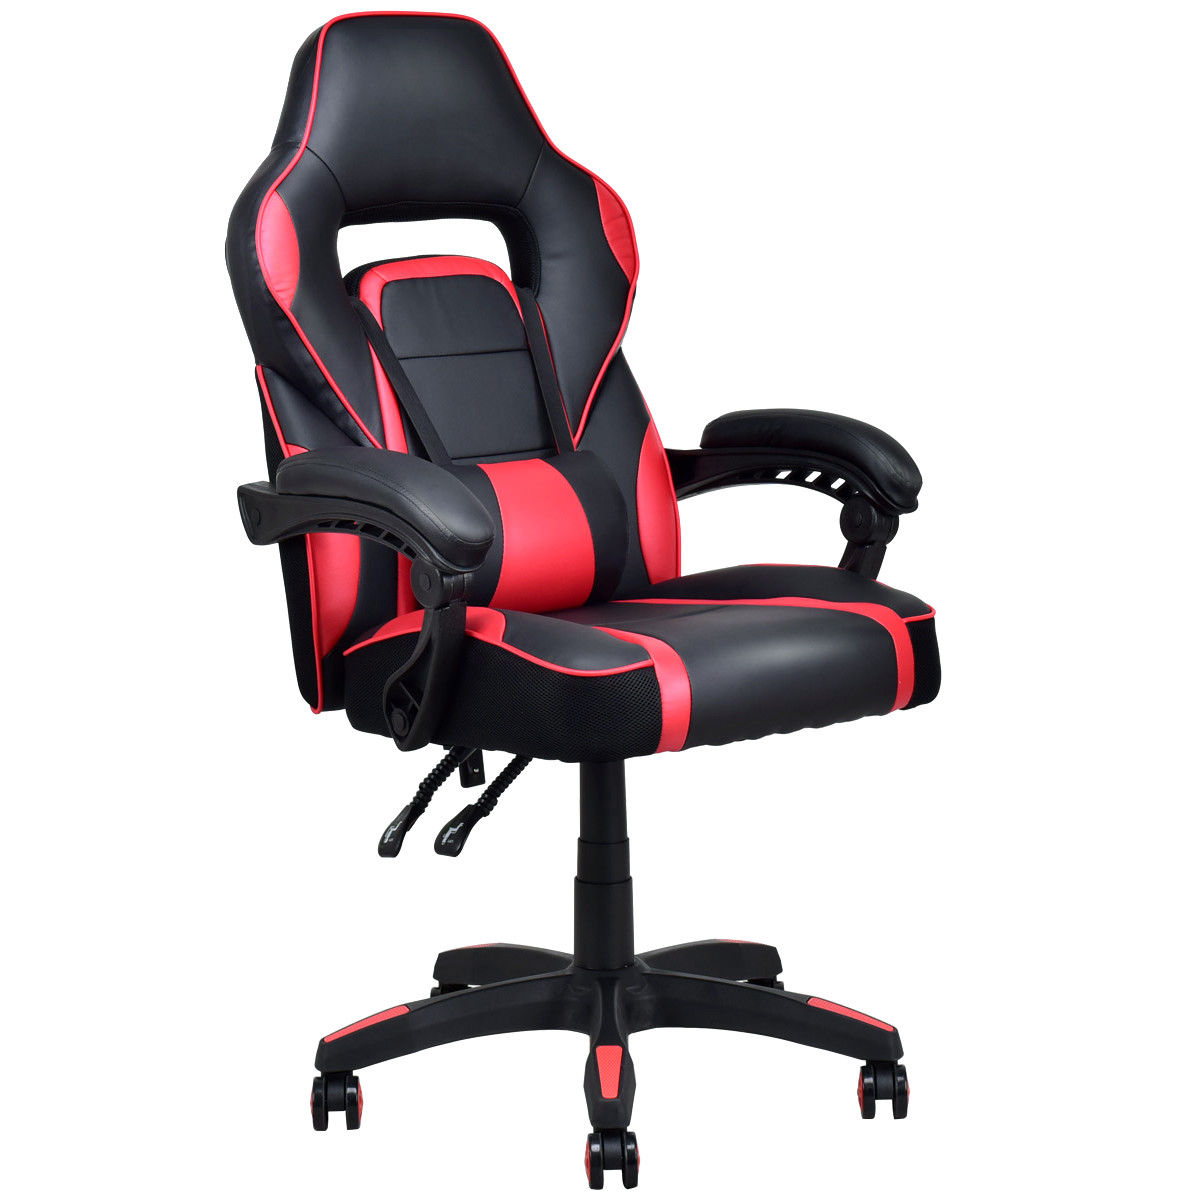 buy leather chairs online aliexpress buy giantex high back recliner executive 11873 | Giantex High Back Recliner Executive Racing Style PU Leather Gaming Chair Office Furniture Modern Swivel Armchairs